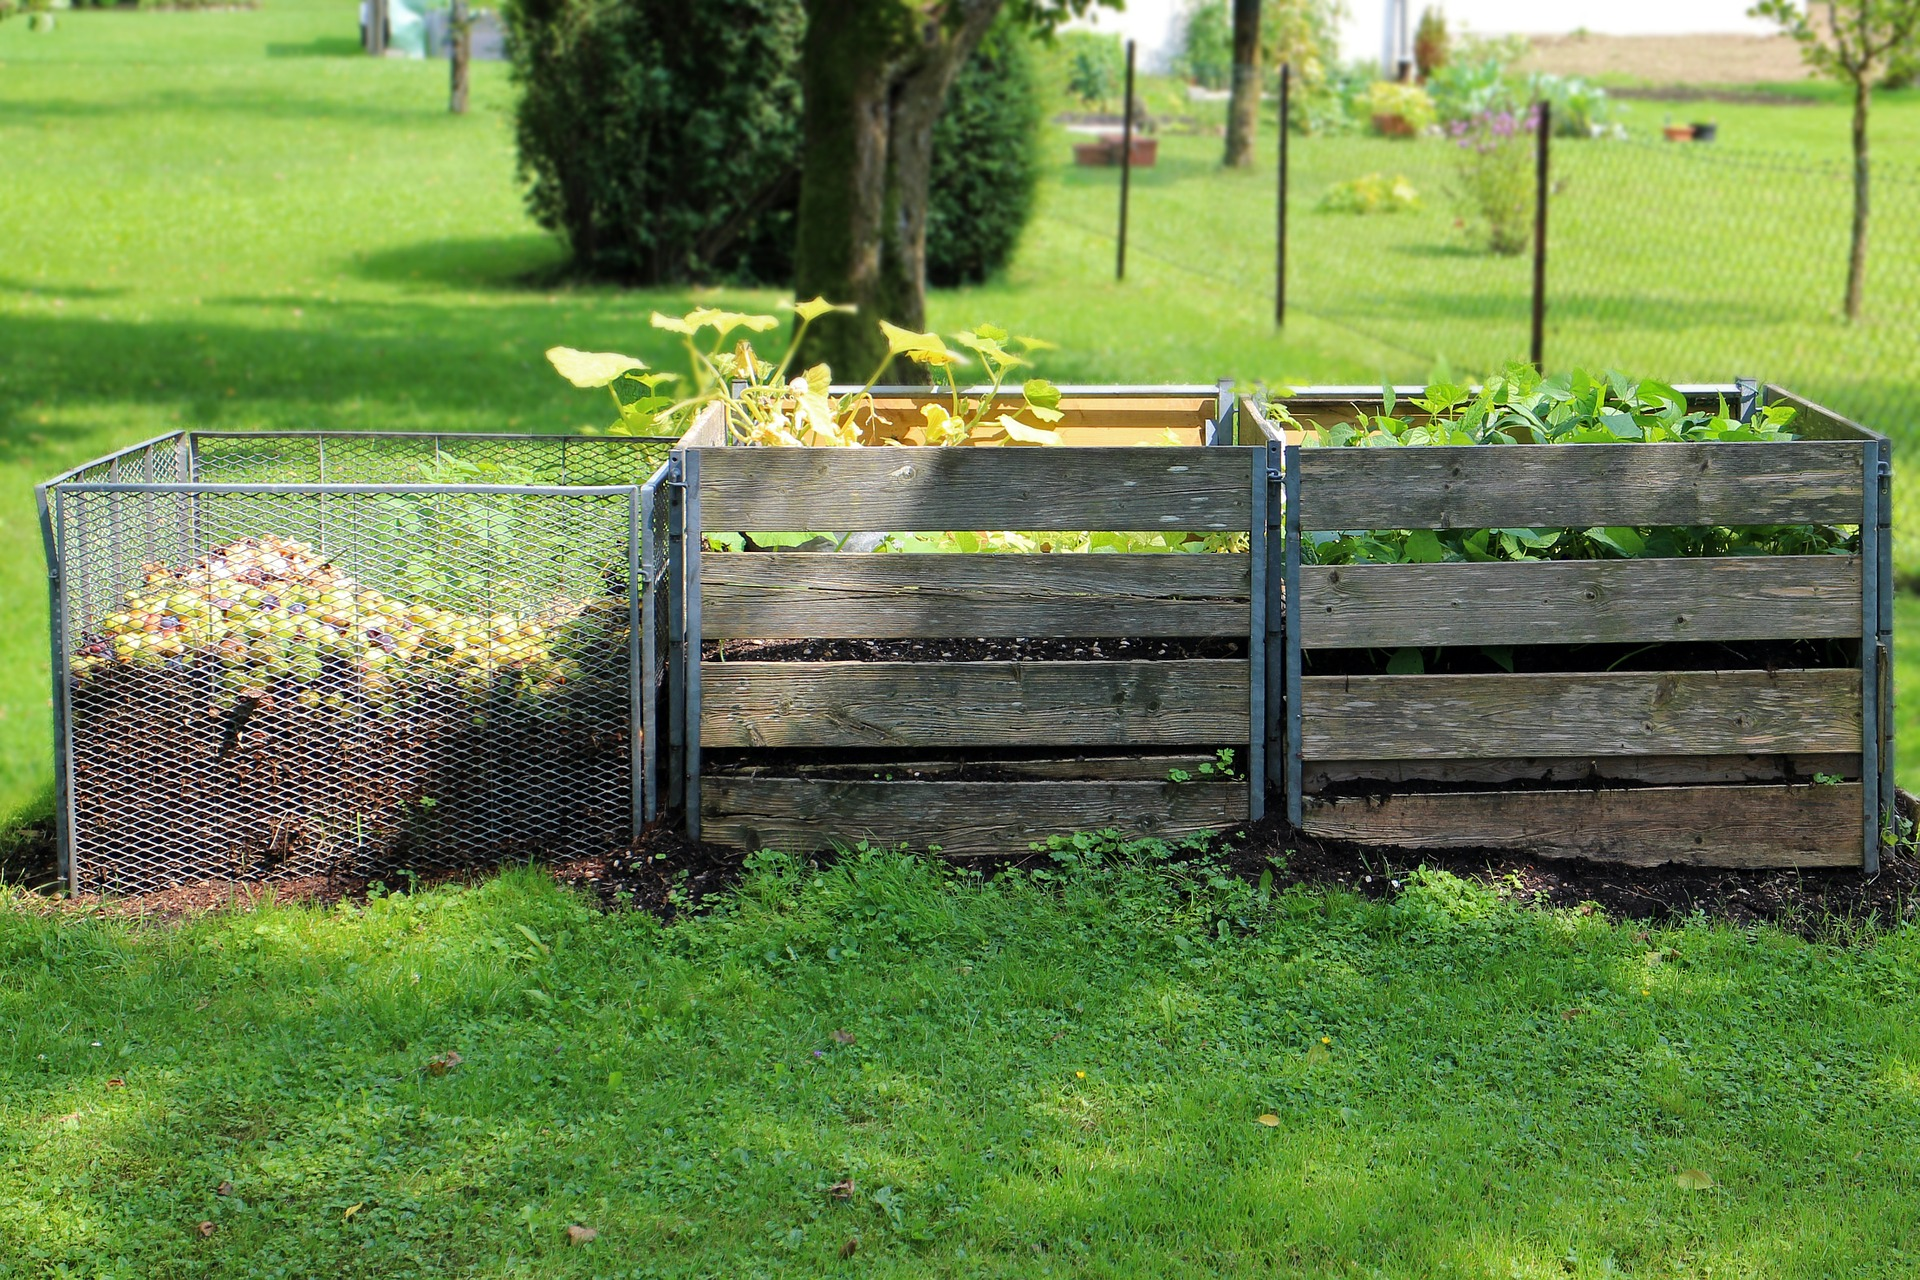 How to Build Your Own Homemade Compost Bin in 3 Easy Steps